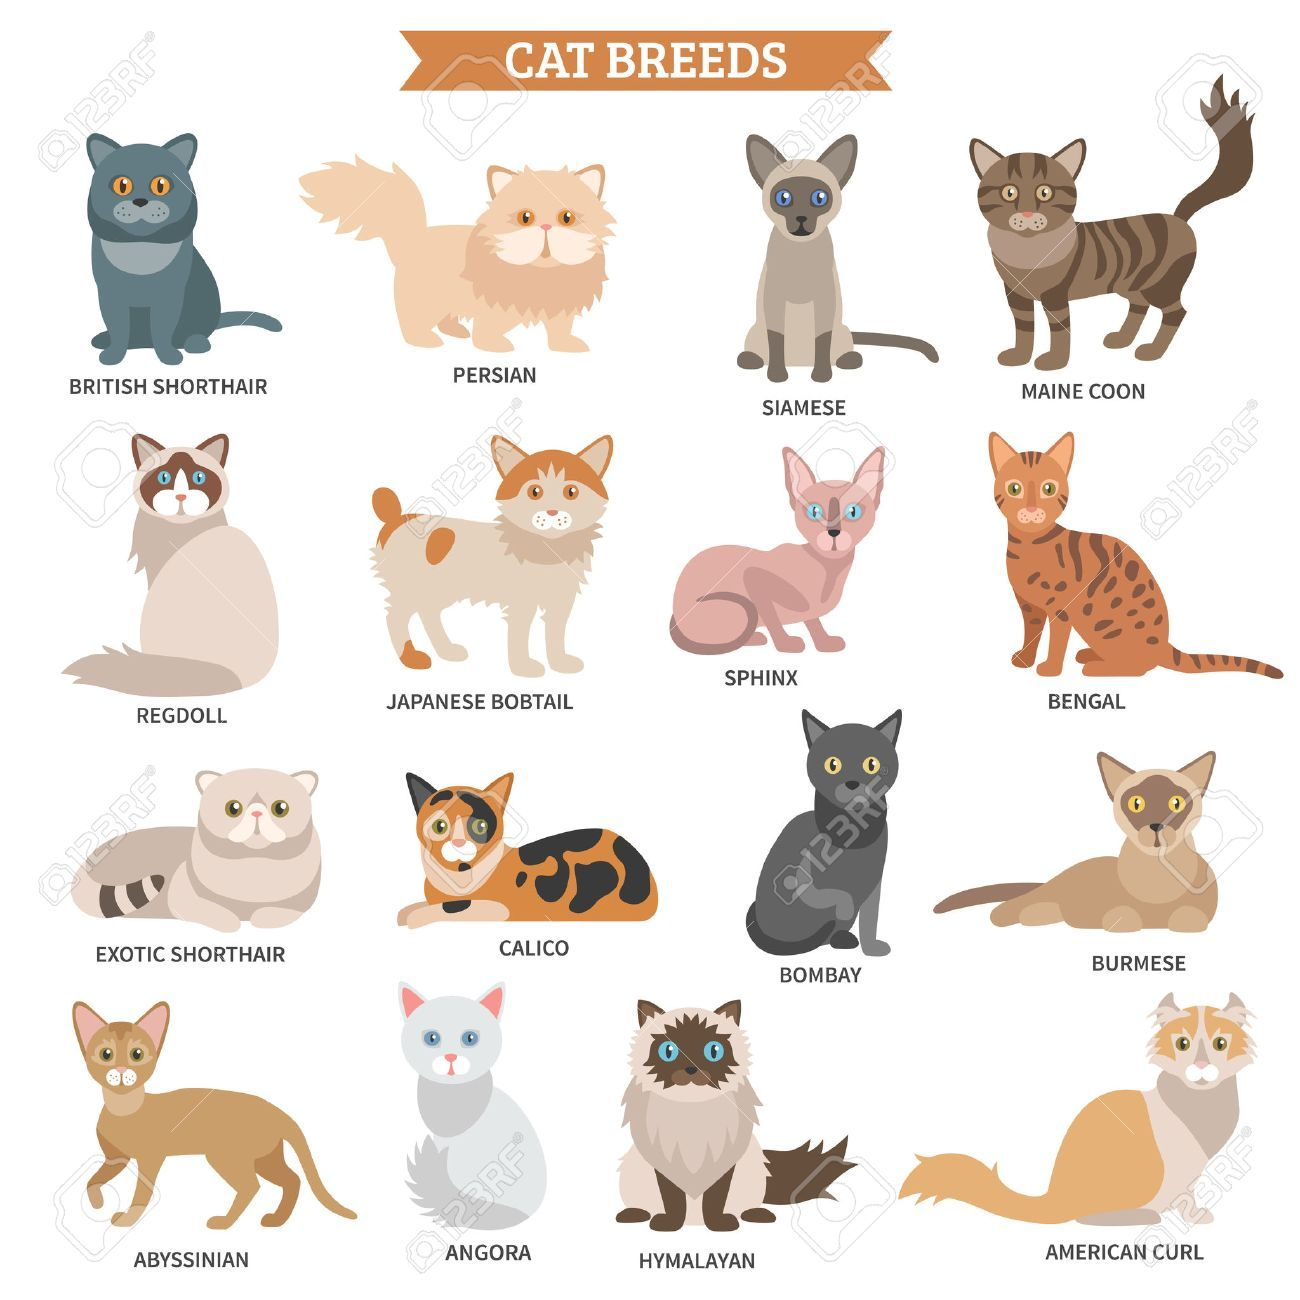 The following list of cat breeds includes only domestic